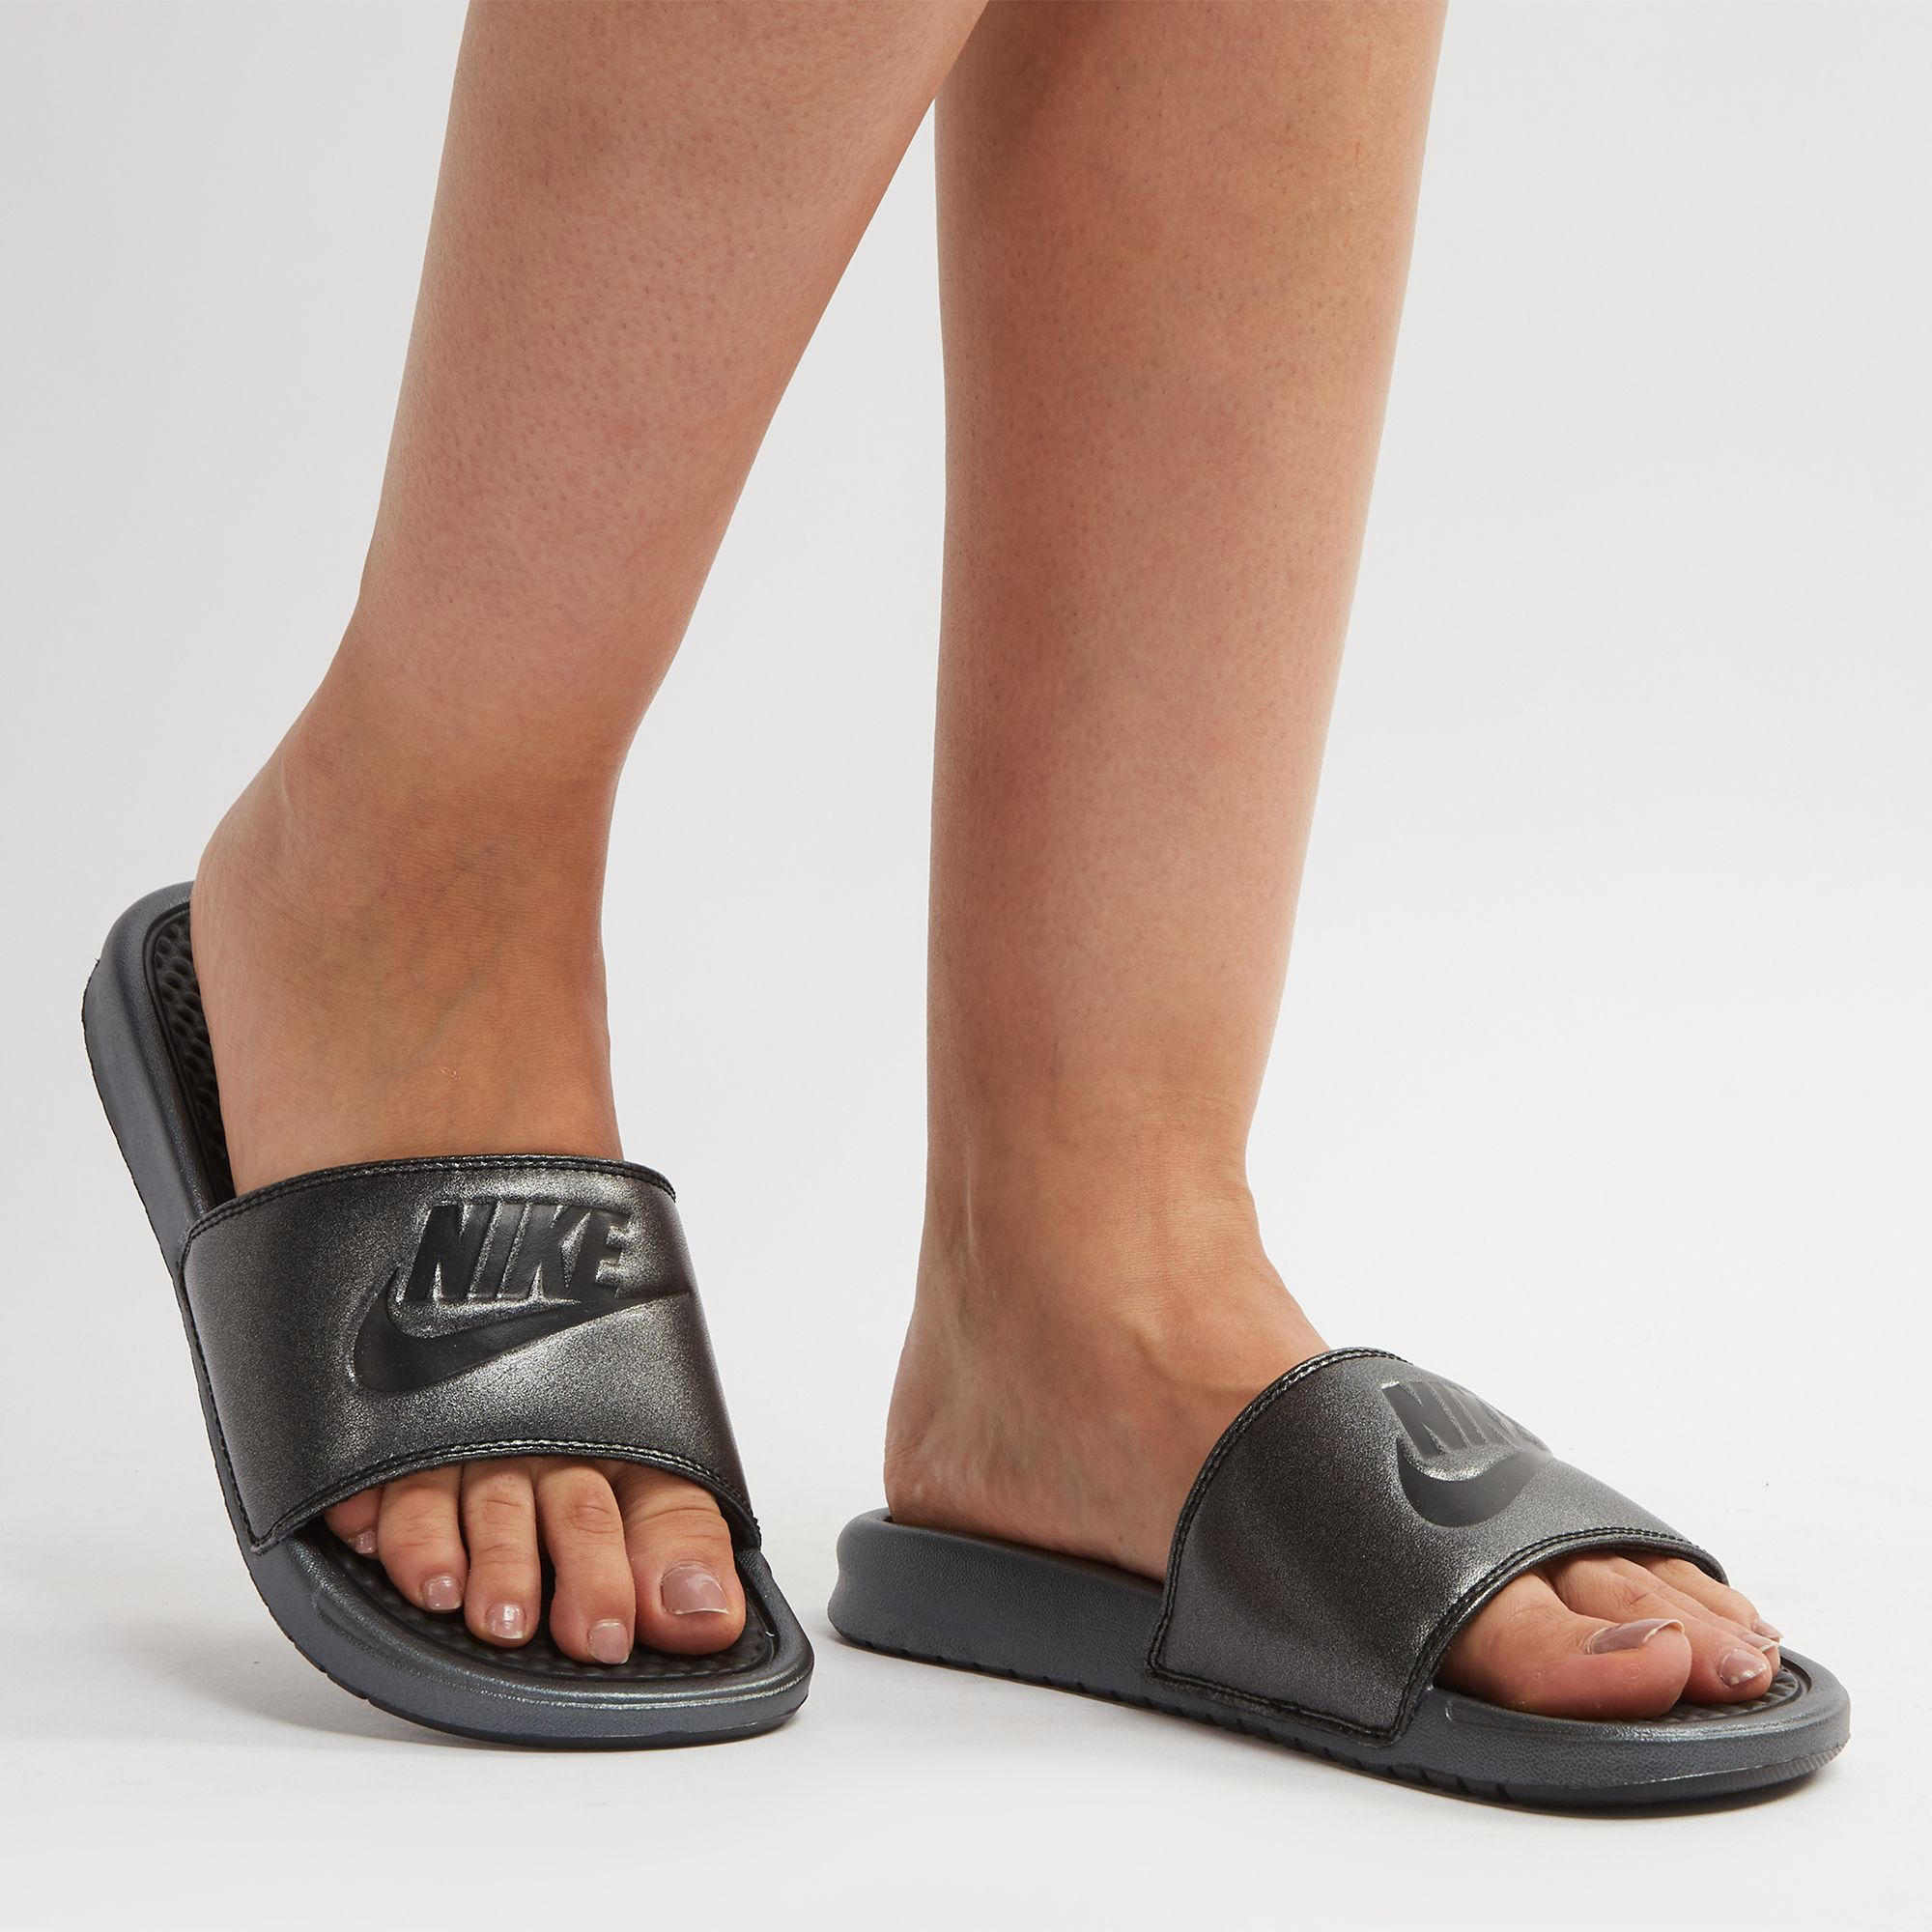 buy online fc5b6 a228e Nike Benassi Metallic QS Just Do It Slide Sandals